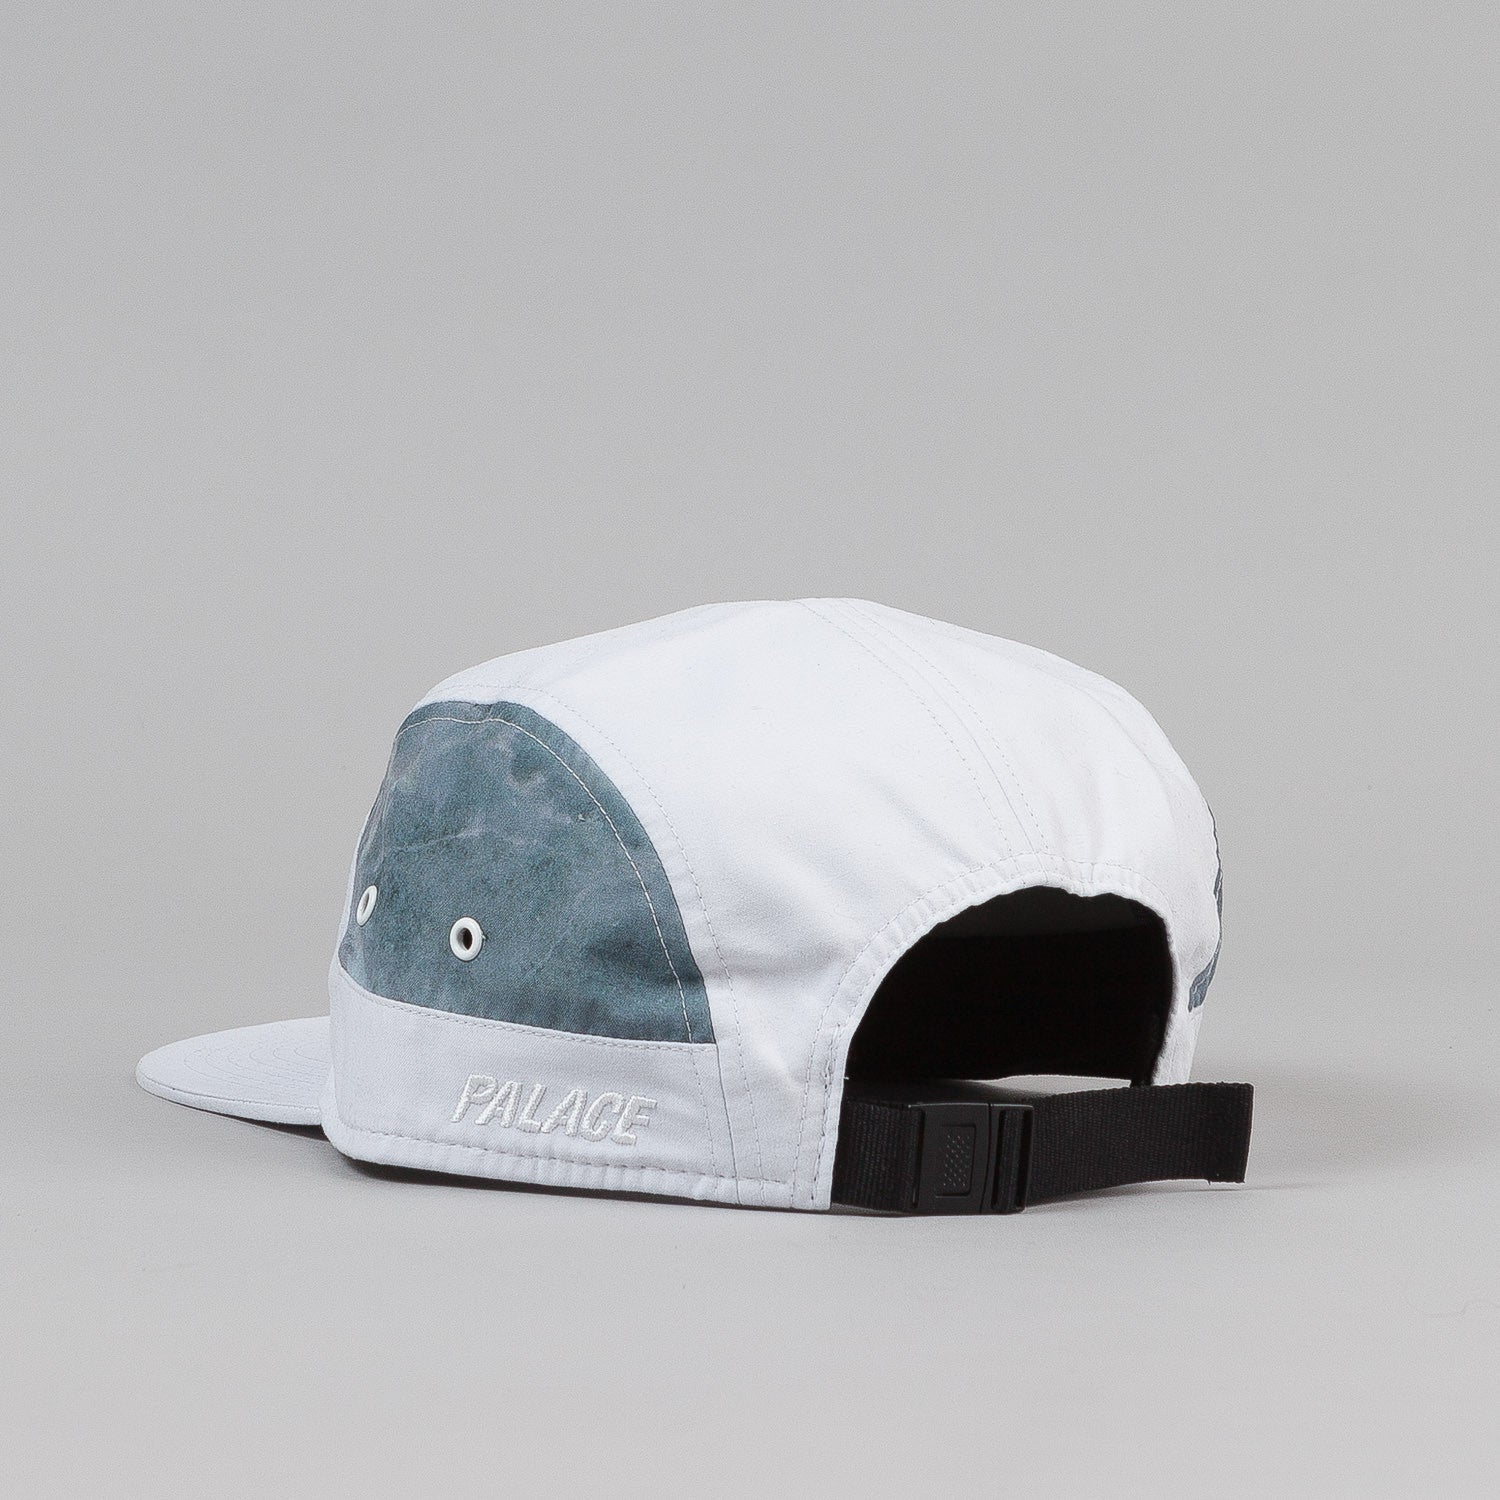 Palace 7 Panel Cap - White / Marble